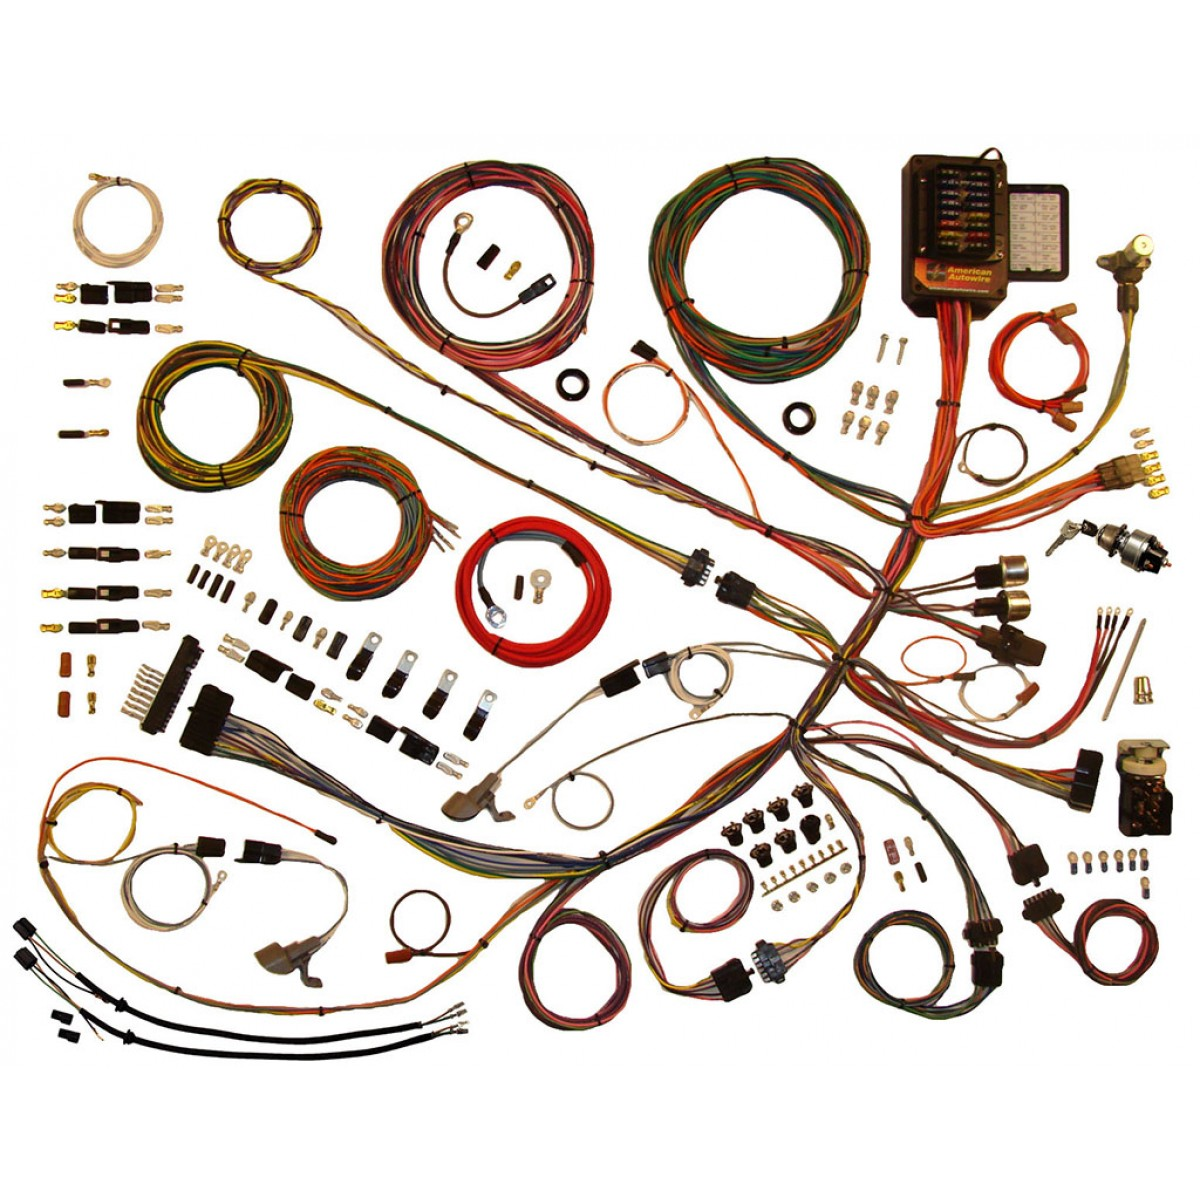 complete wiring harness kit 1953 1956 ford f100 part 510303 ford truck wiring harness f100 1953 1956 ford f100 wiring harness complete wiring harness kit ford wiring harness at n-0.co